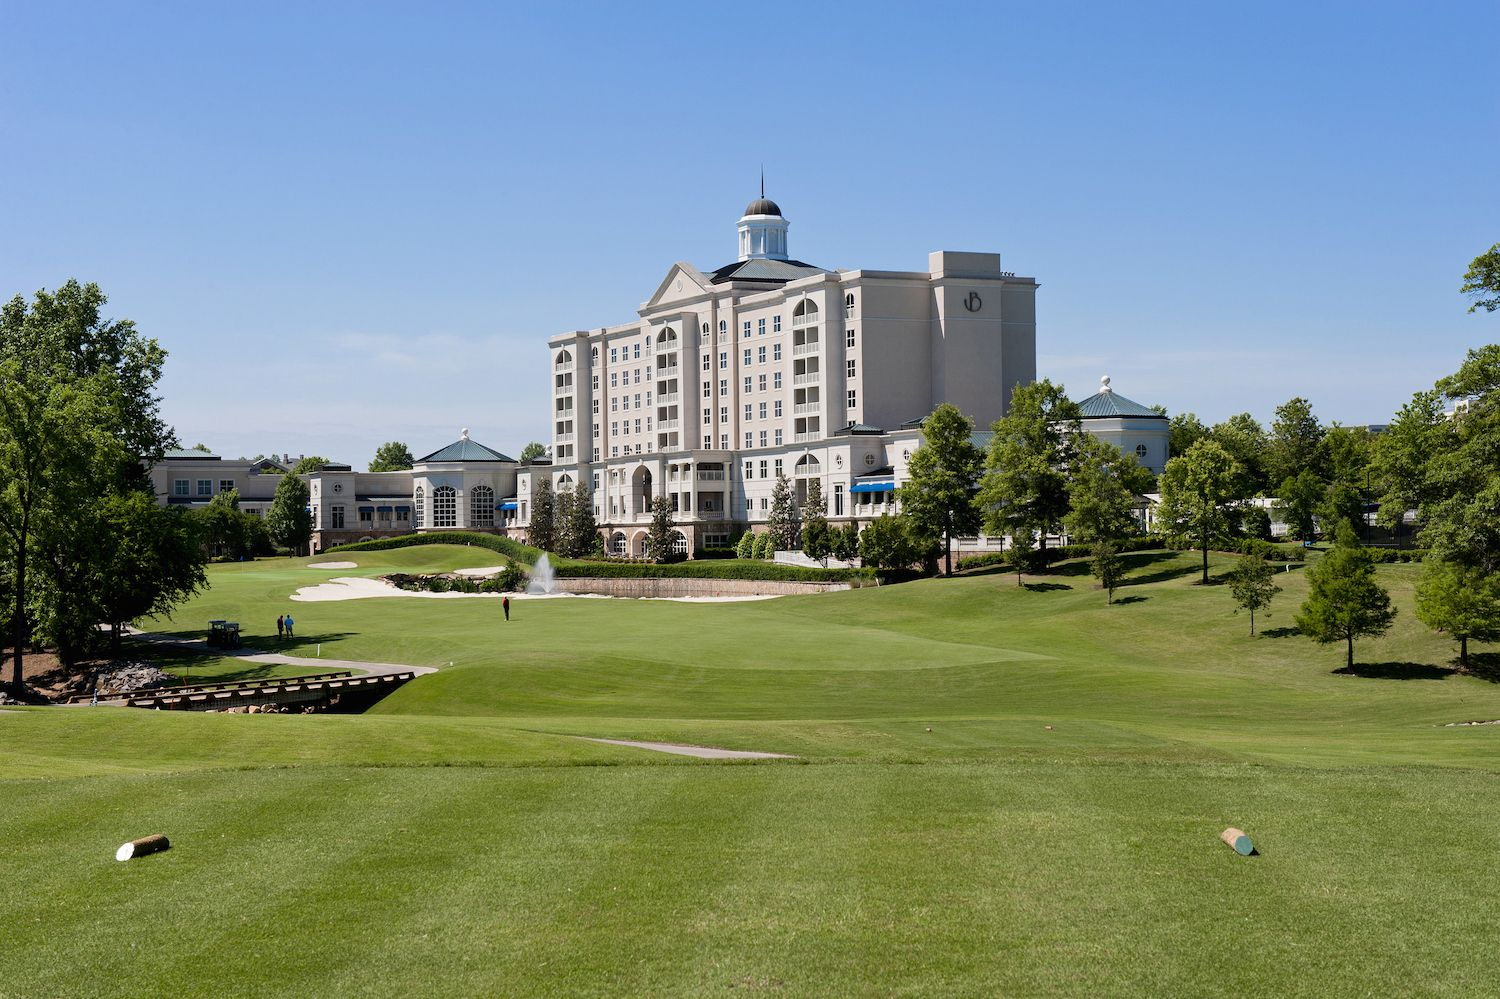 The Golf Club At The Ballantyne Hotel Provides Top Quality Golf